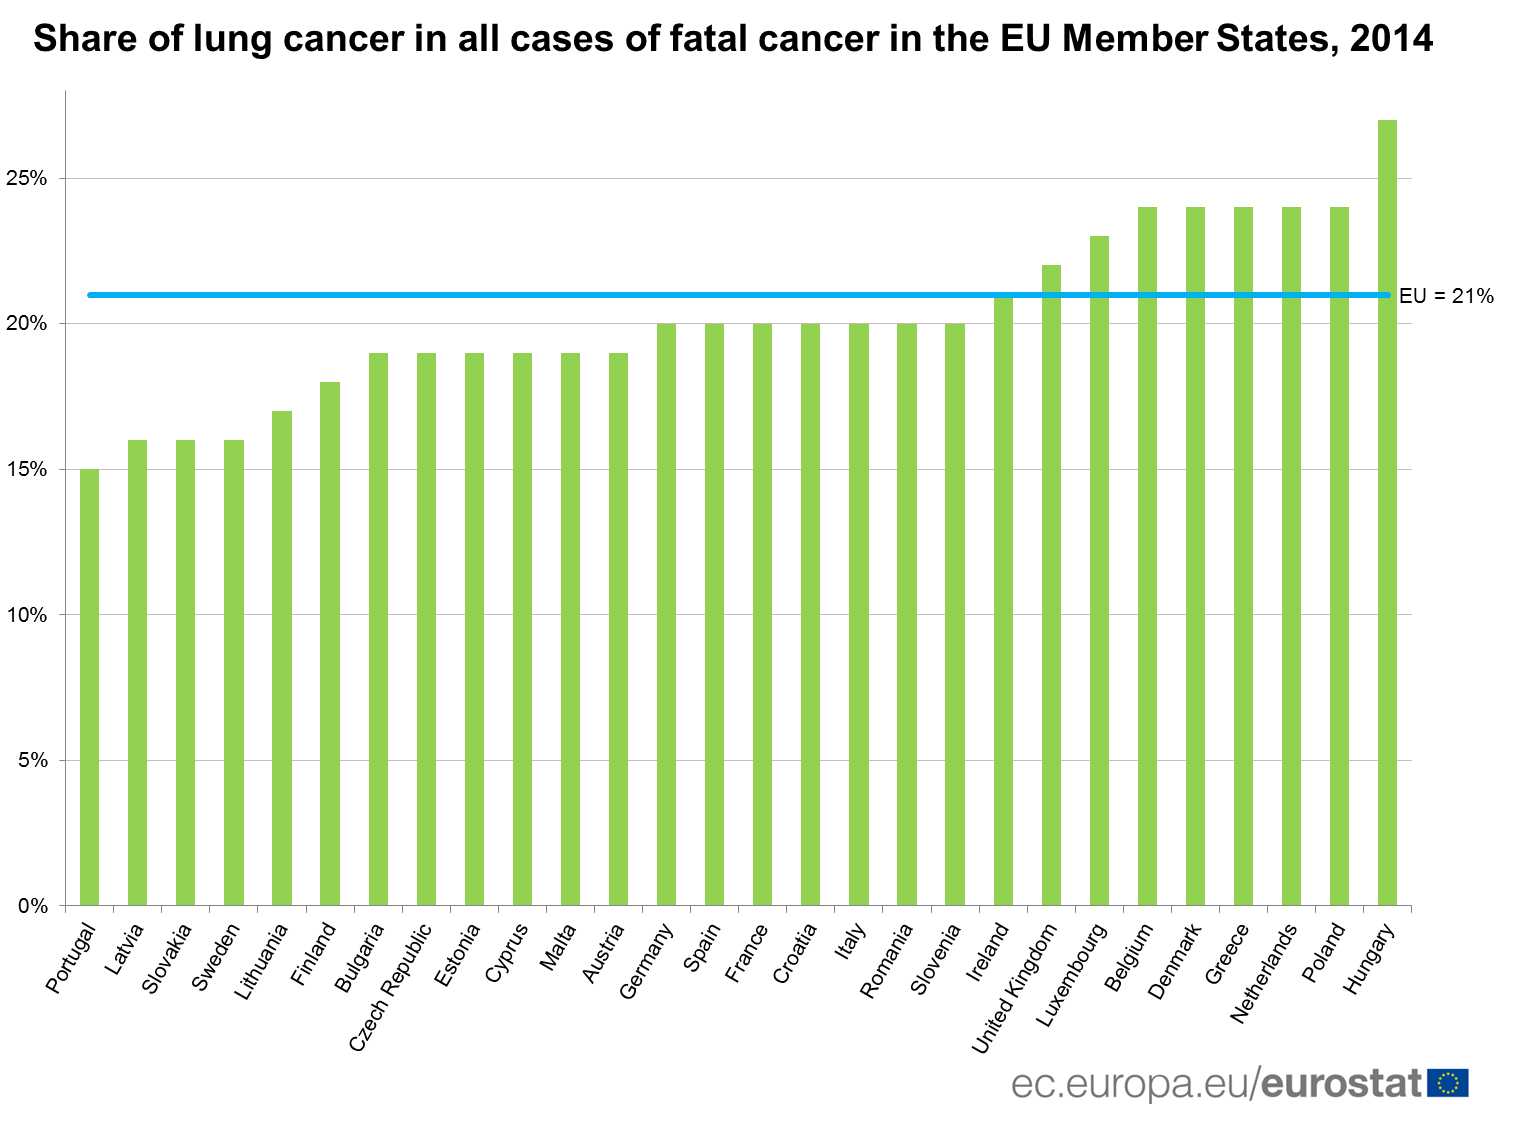 Share of lung cancer in the EU, 2014